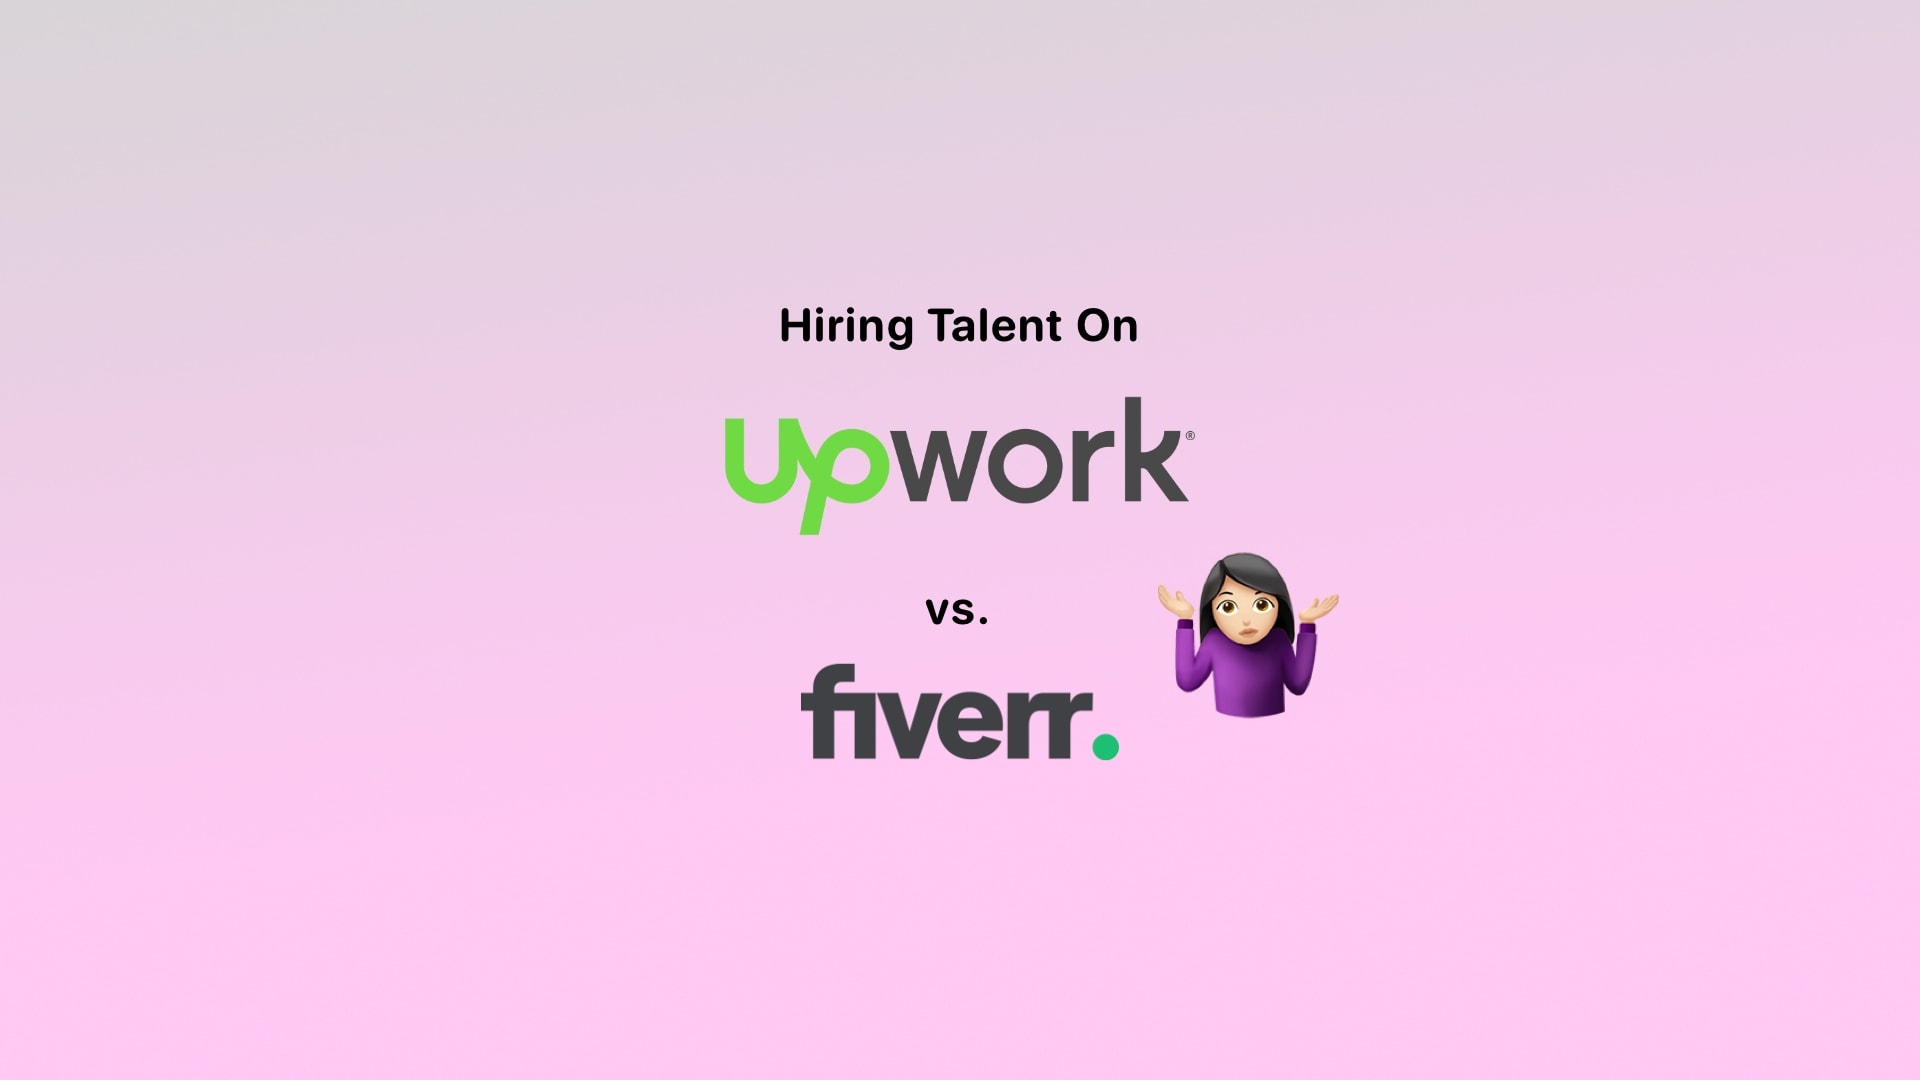 Upwork vs Fiverr - What's The Difference